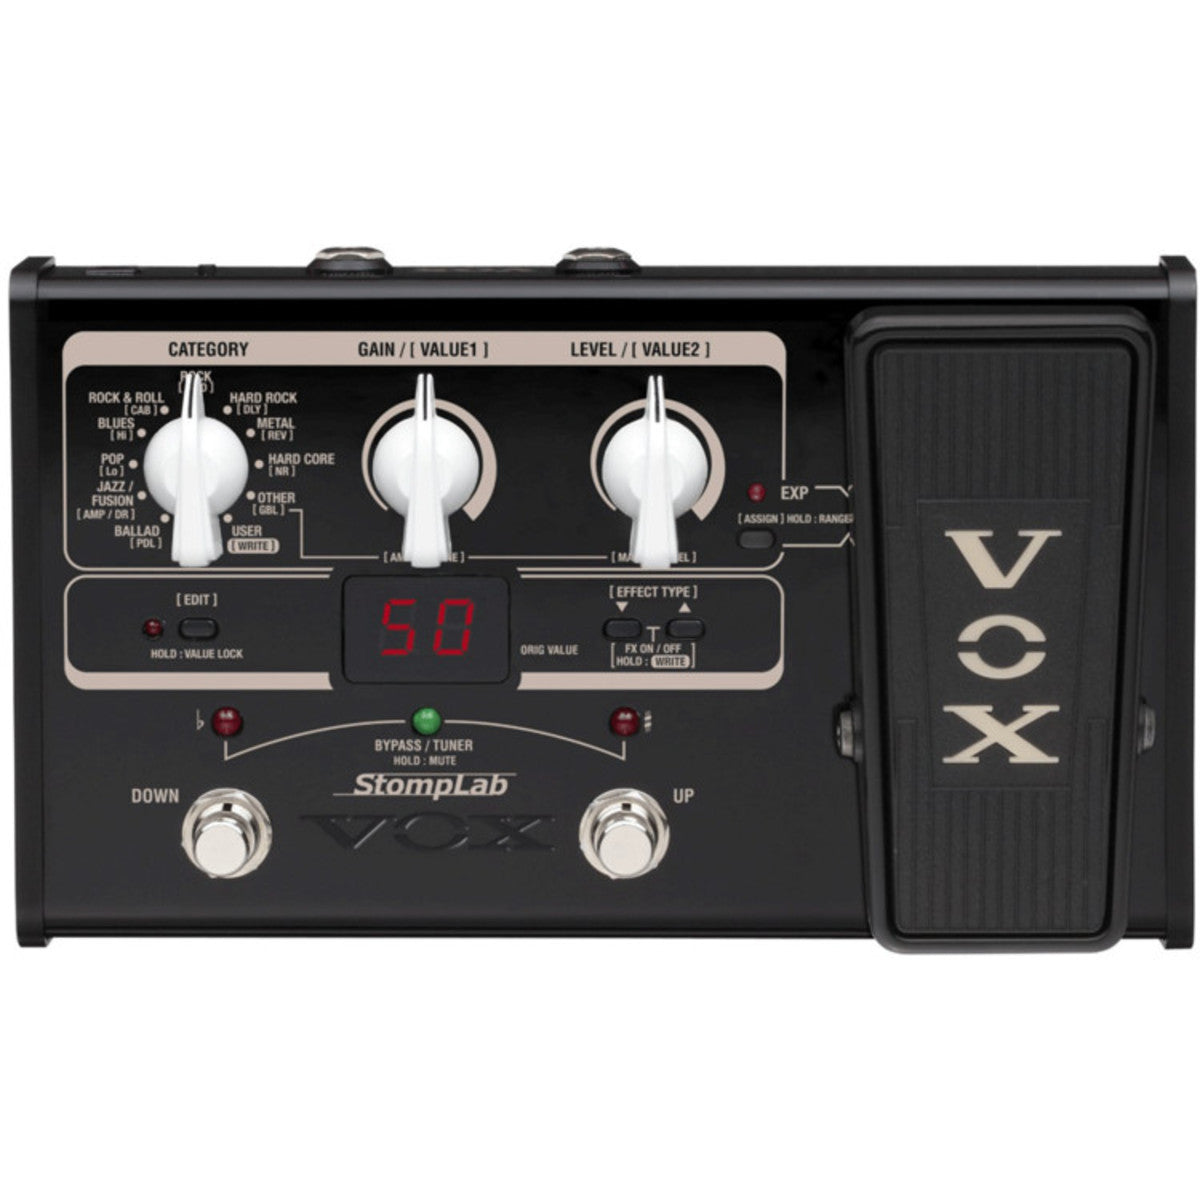 VOX STOMPLAB IIG - MODELLING EFFECTS PEDAL FOR GUITAR